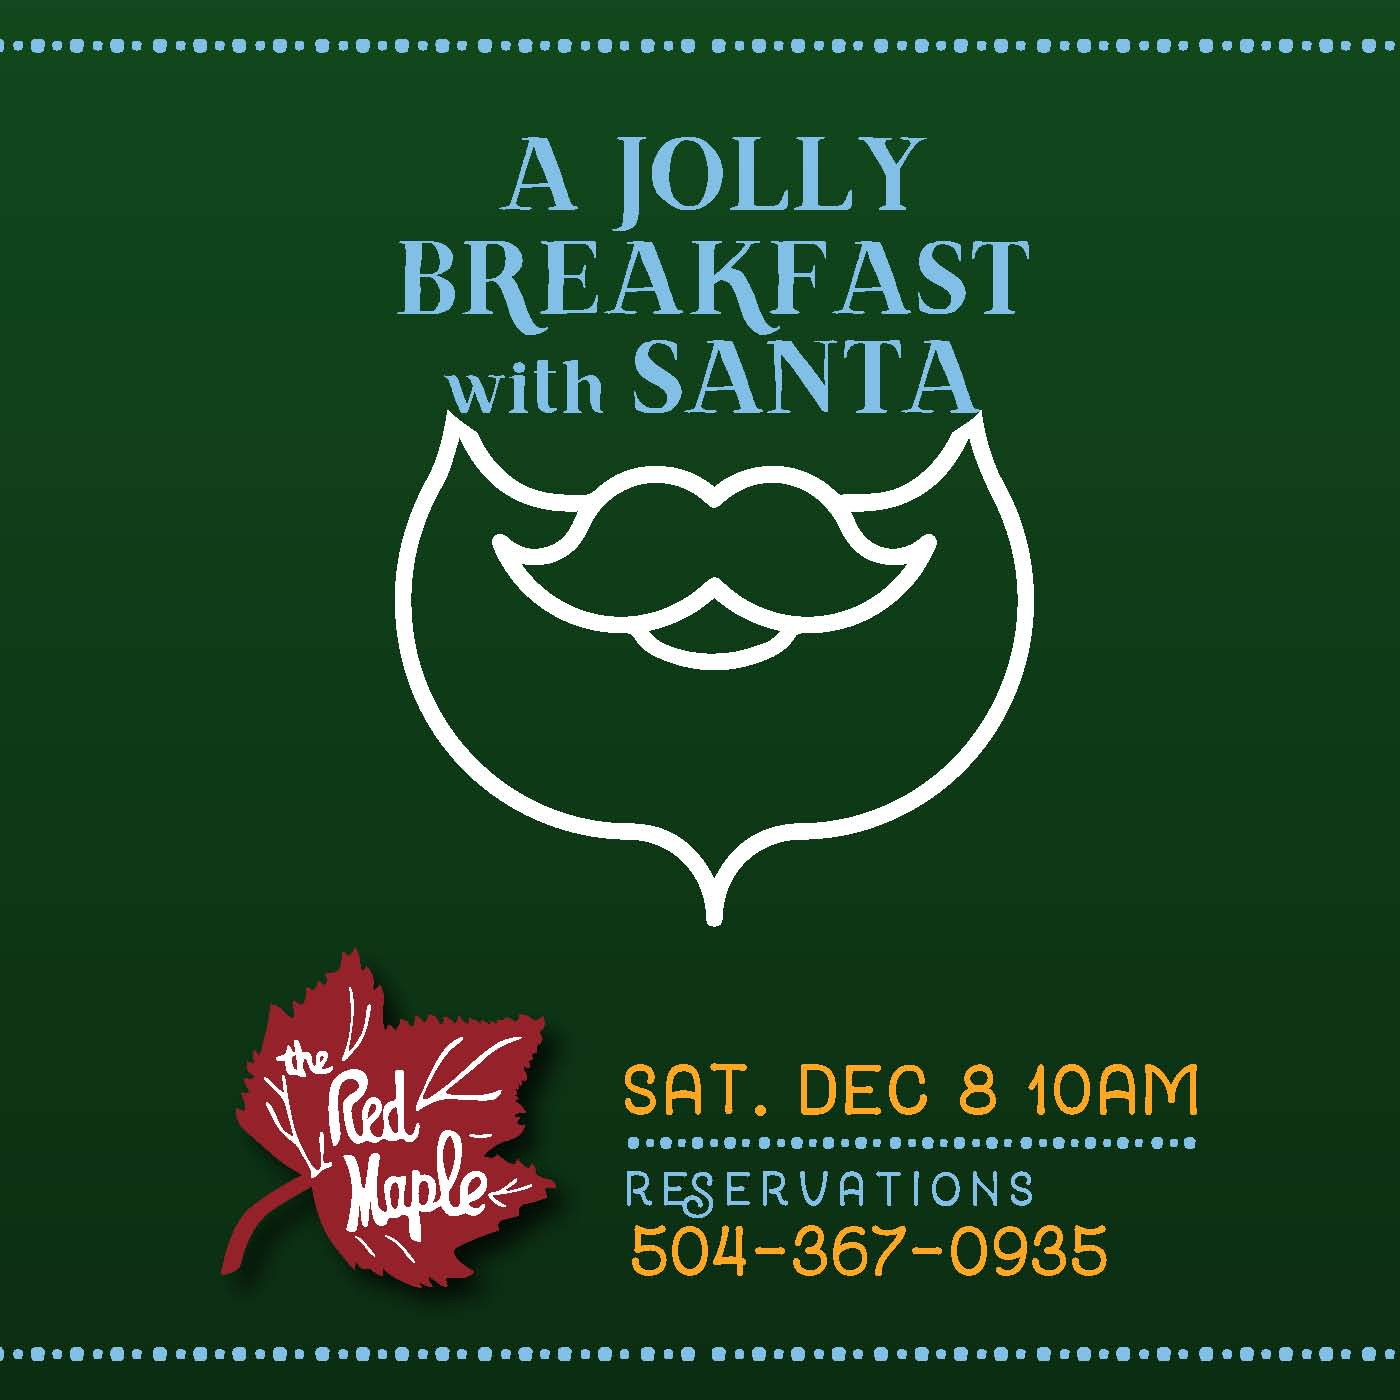 Breakfast with Santa at The Red Maple